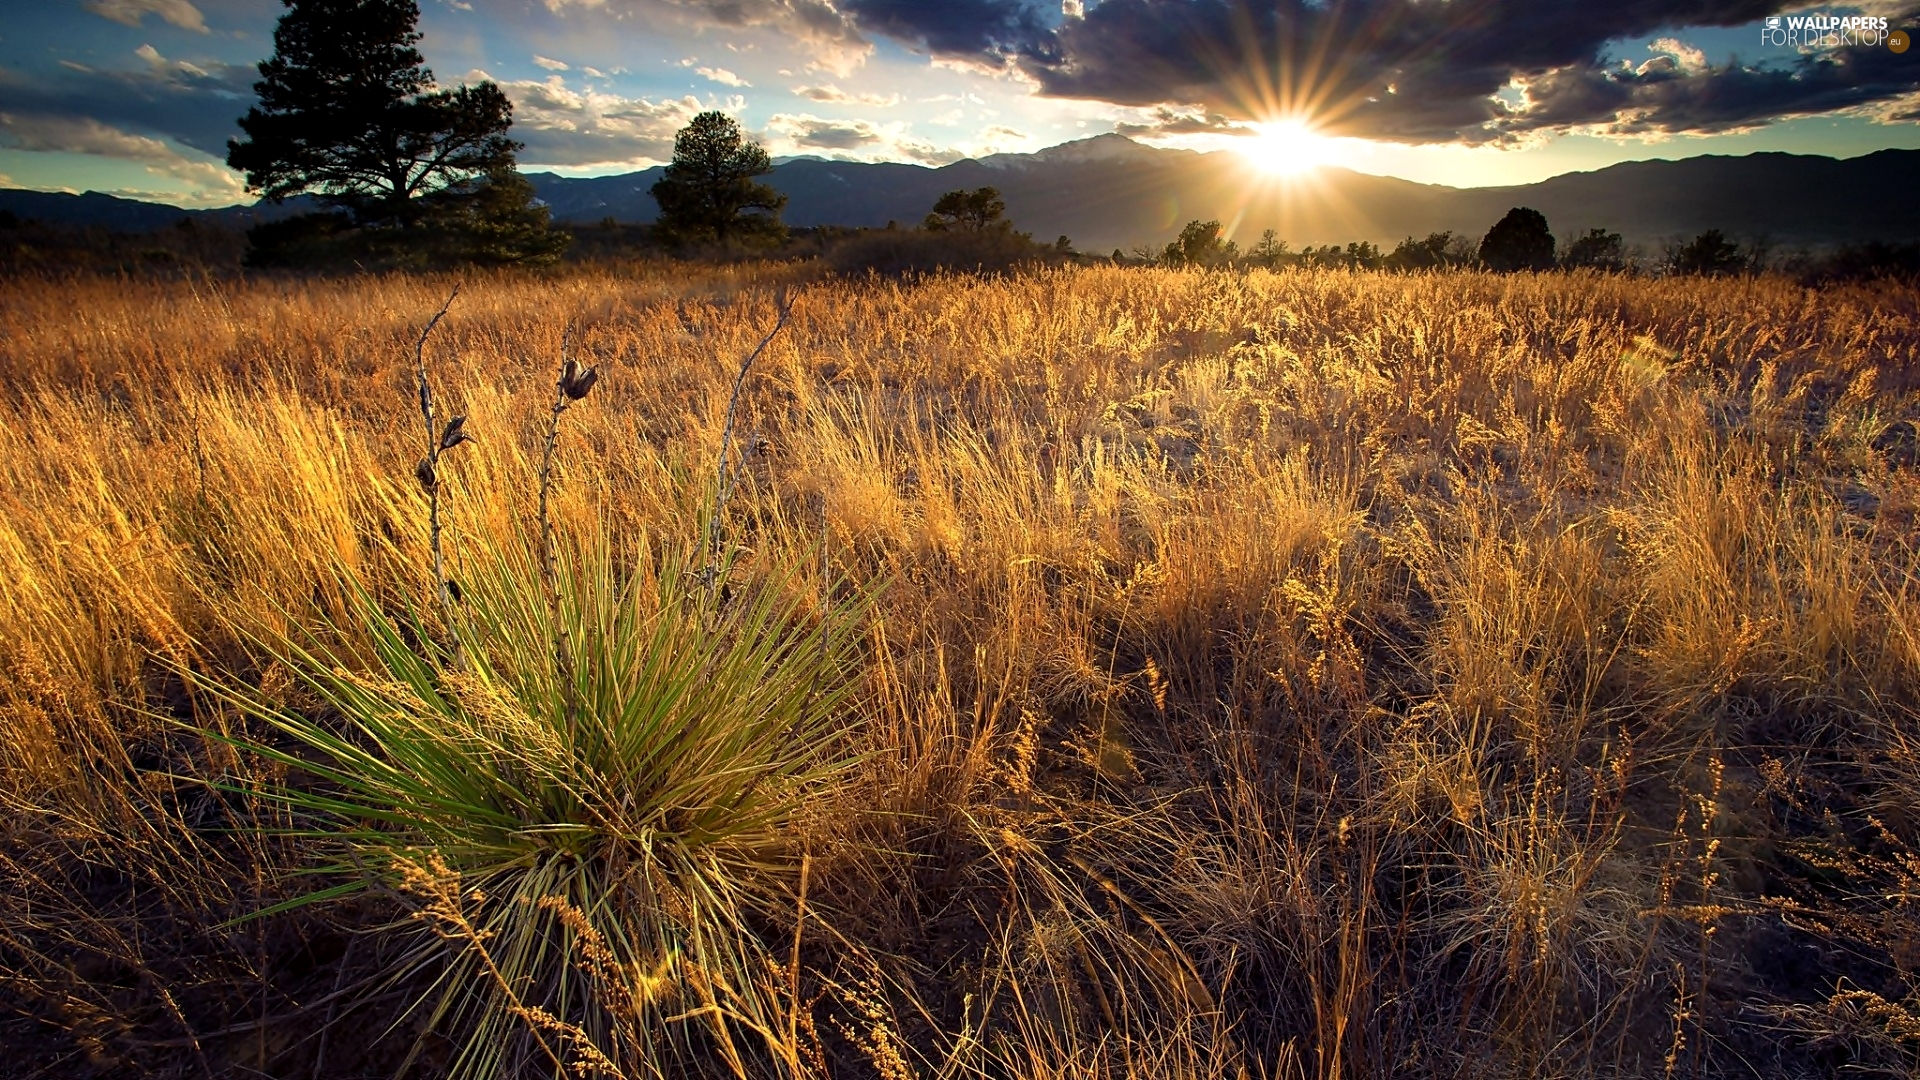 viewes, grass, Sky, trees, Meadow, clouds, rays of the Sun